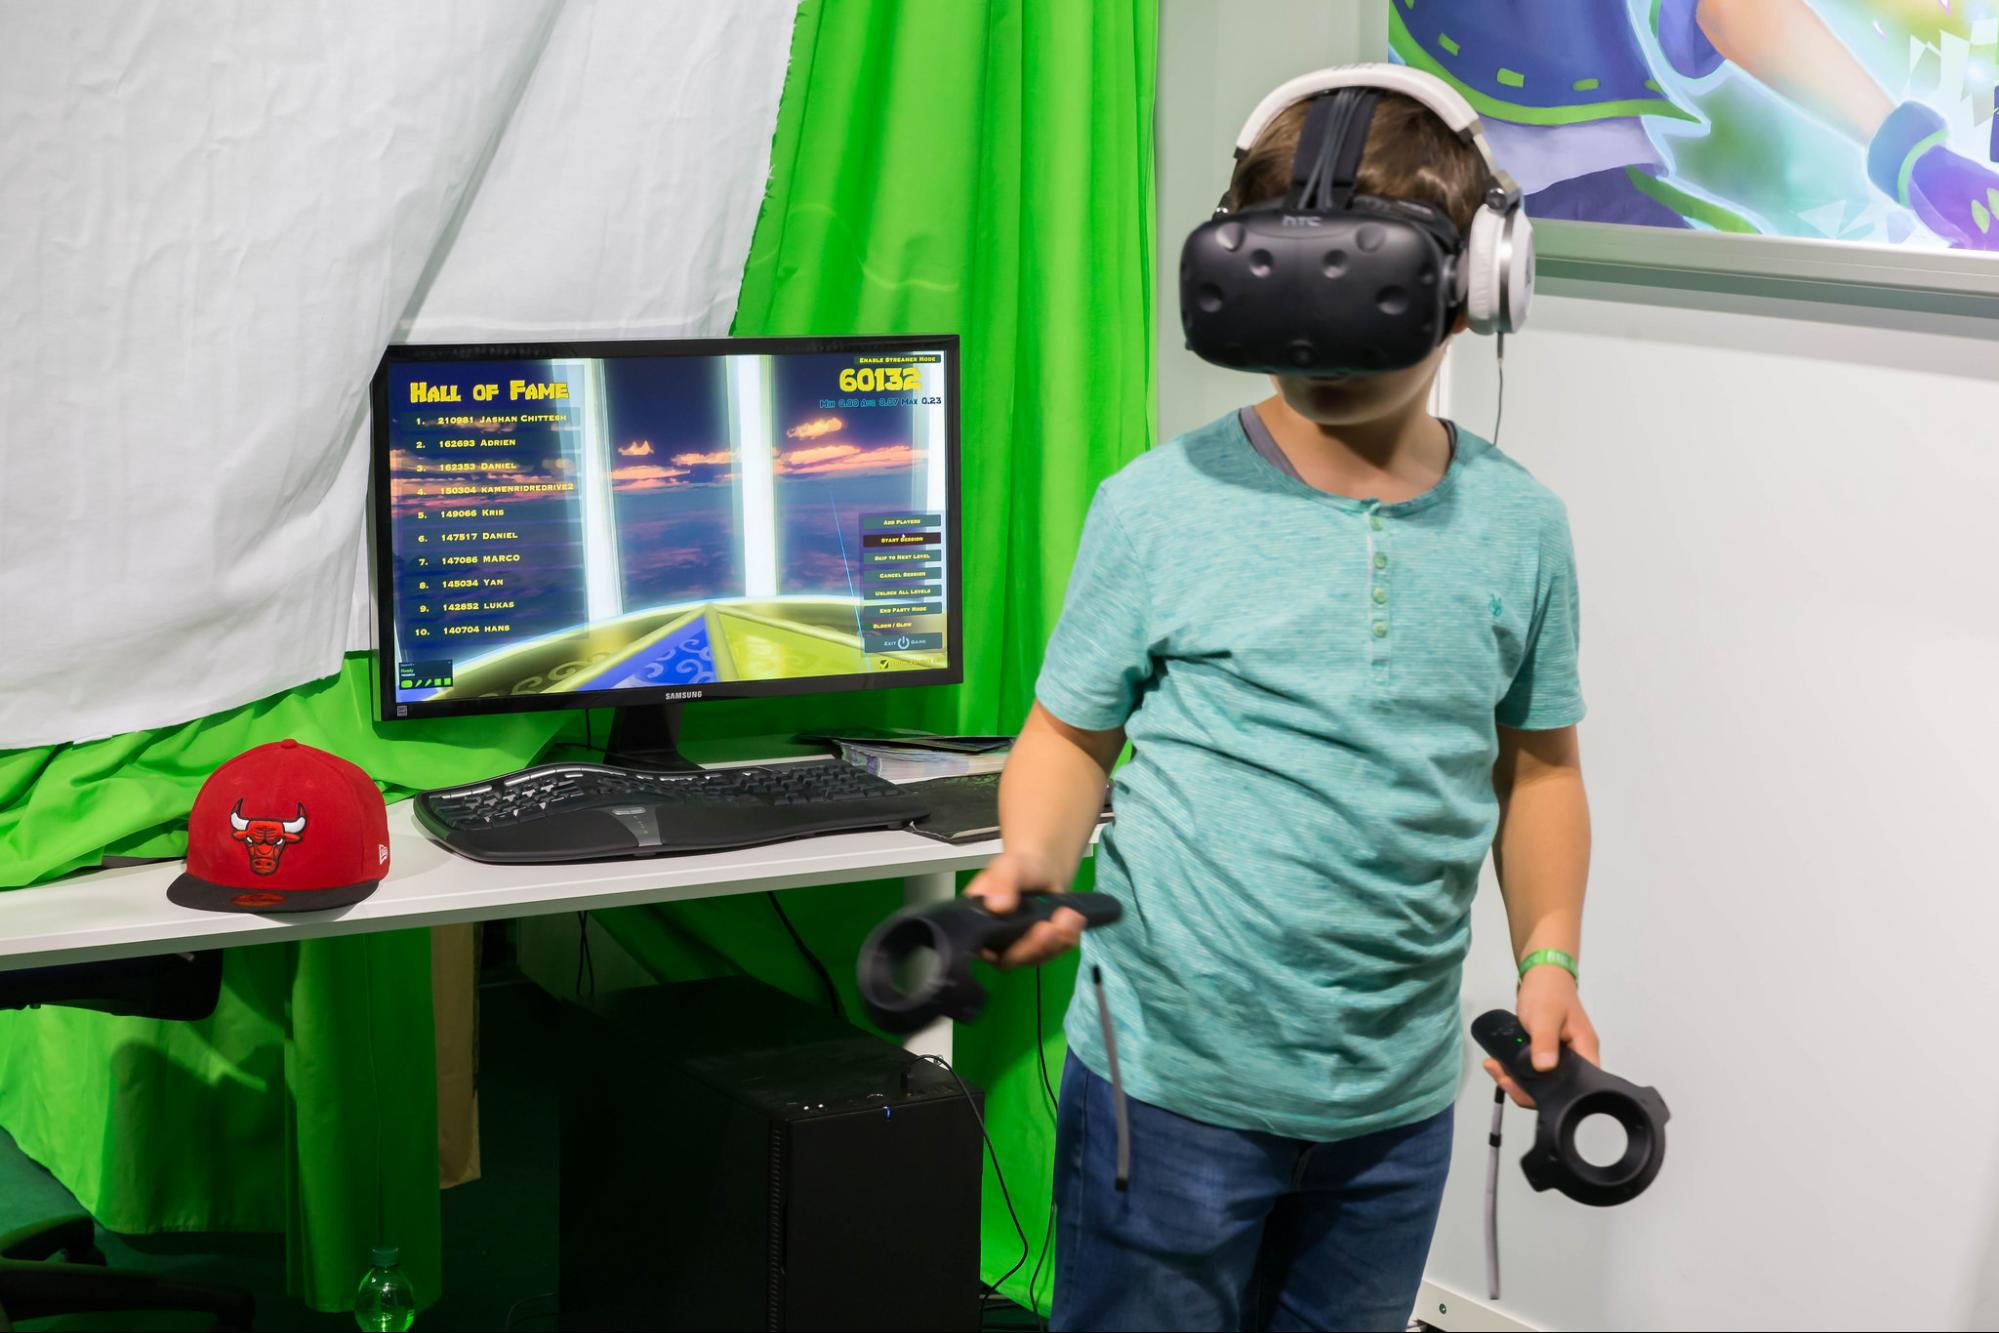 Game developers prefer HTC's Vive to the Oculus Rift